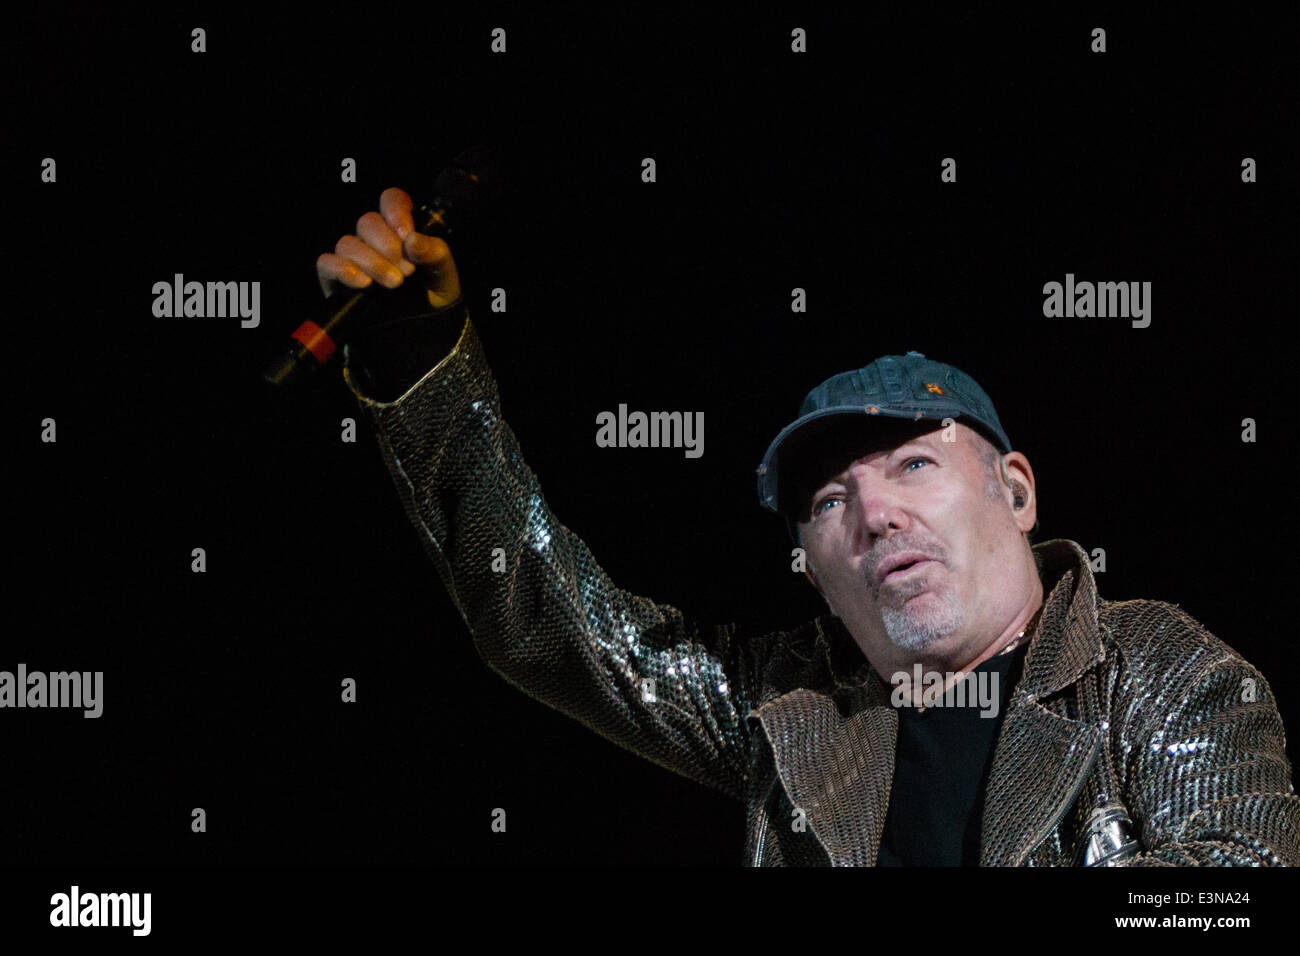 Vasco Rossi 2014 Album Vasco Rossi Live Stock Photos Vasco Rossi Live Stock Images Alamy